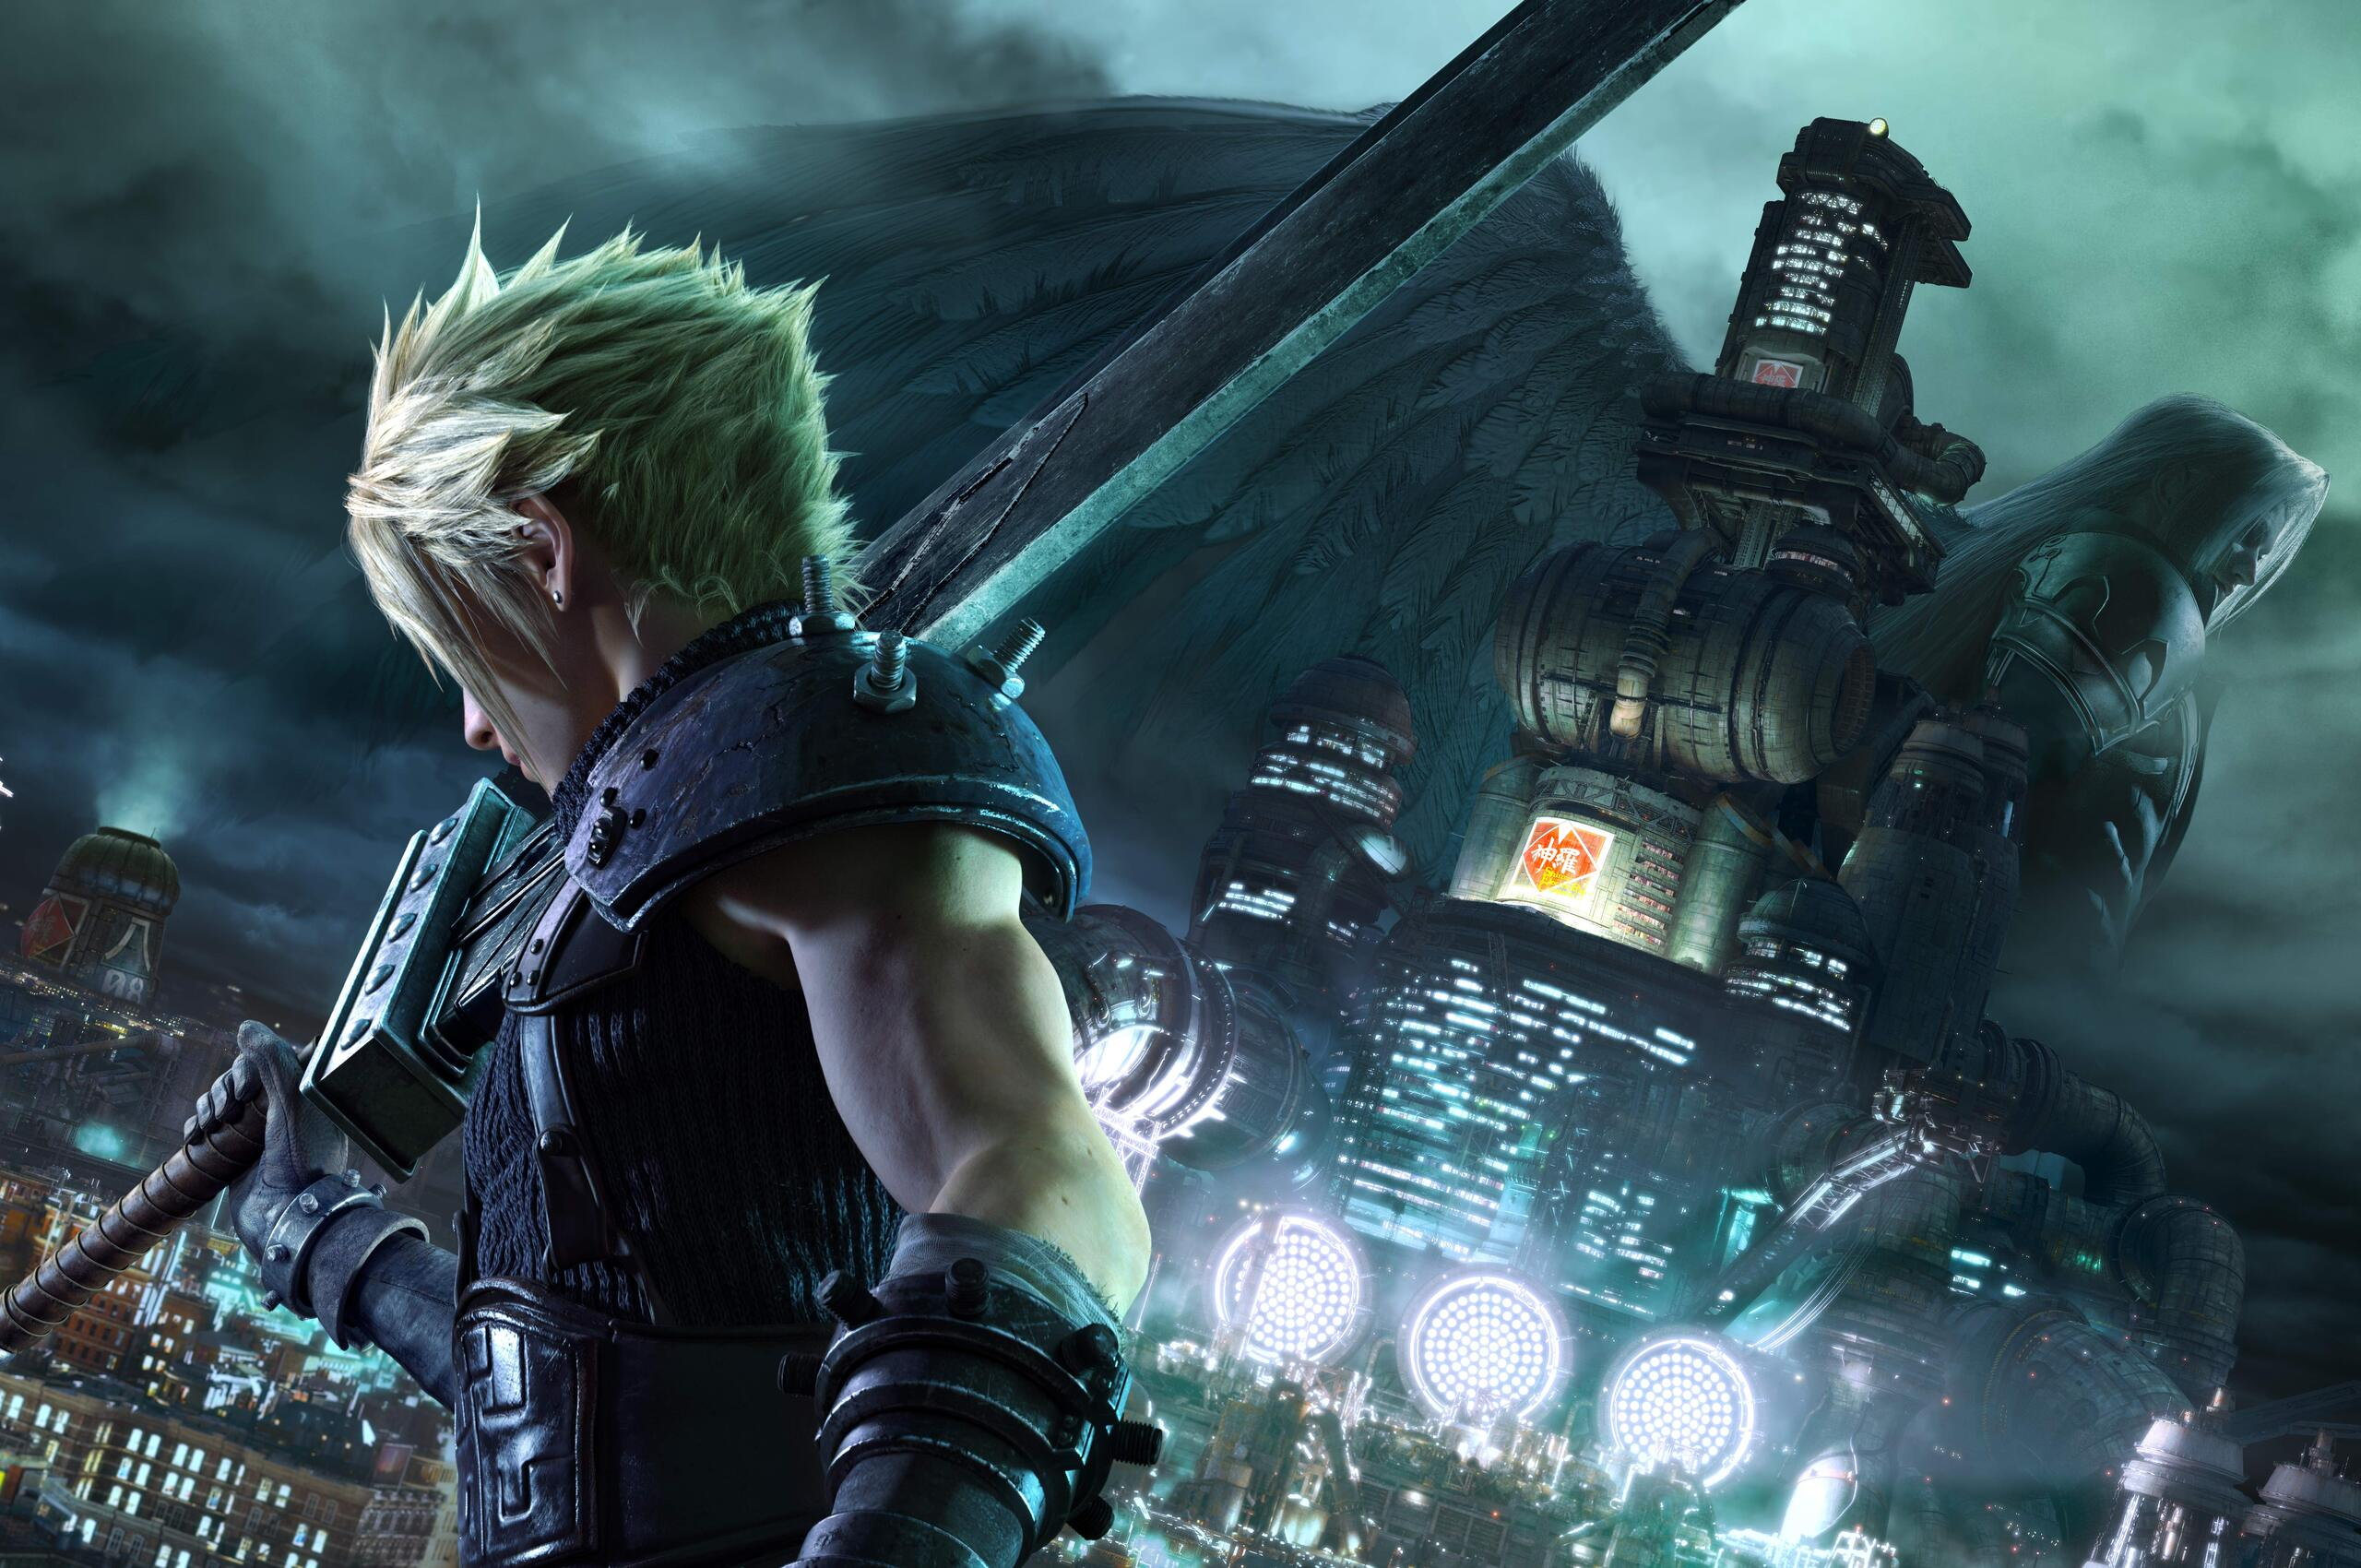 2560x1700 Final Fantasy Vii Remake 8k 2020 Chromebook Pixel Hd 4k Wallpapers Images Backgrounds Photos And Pictures